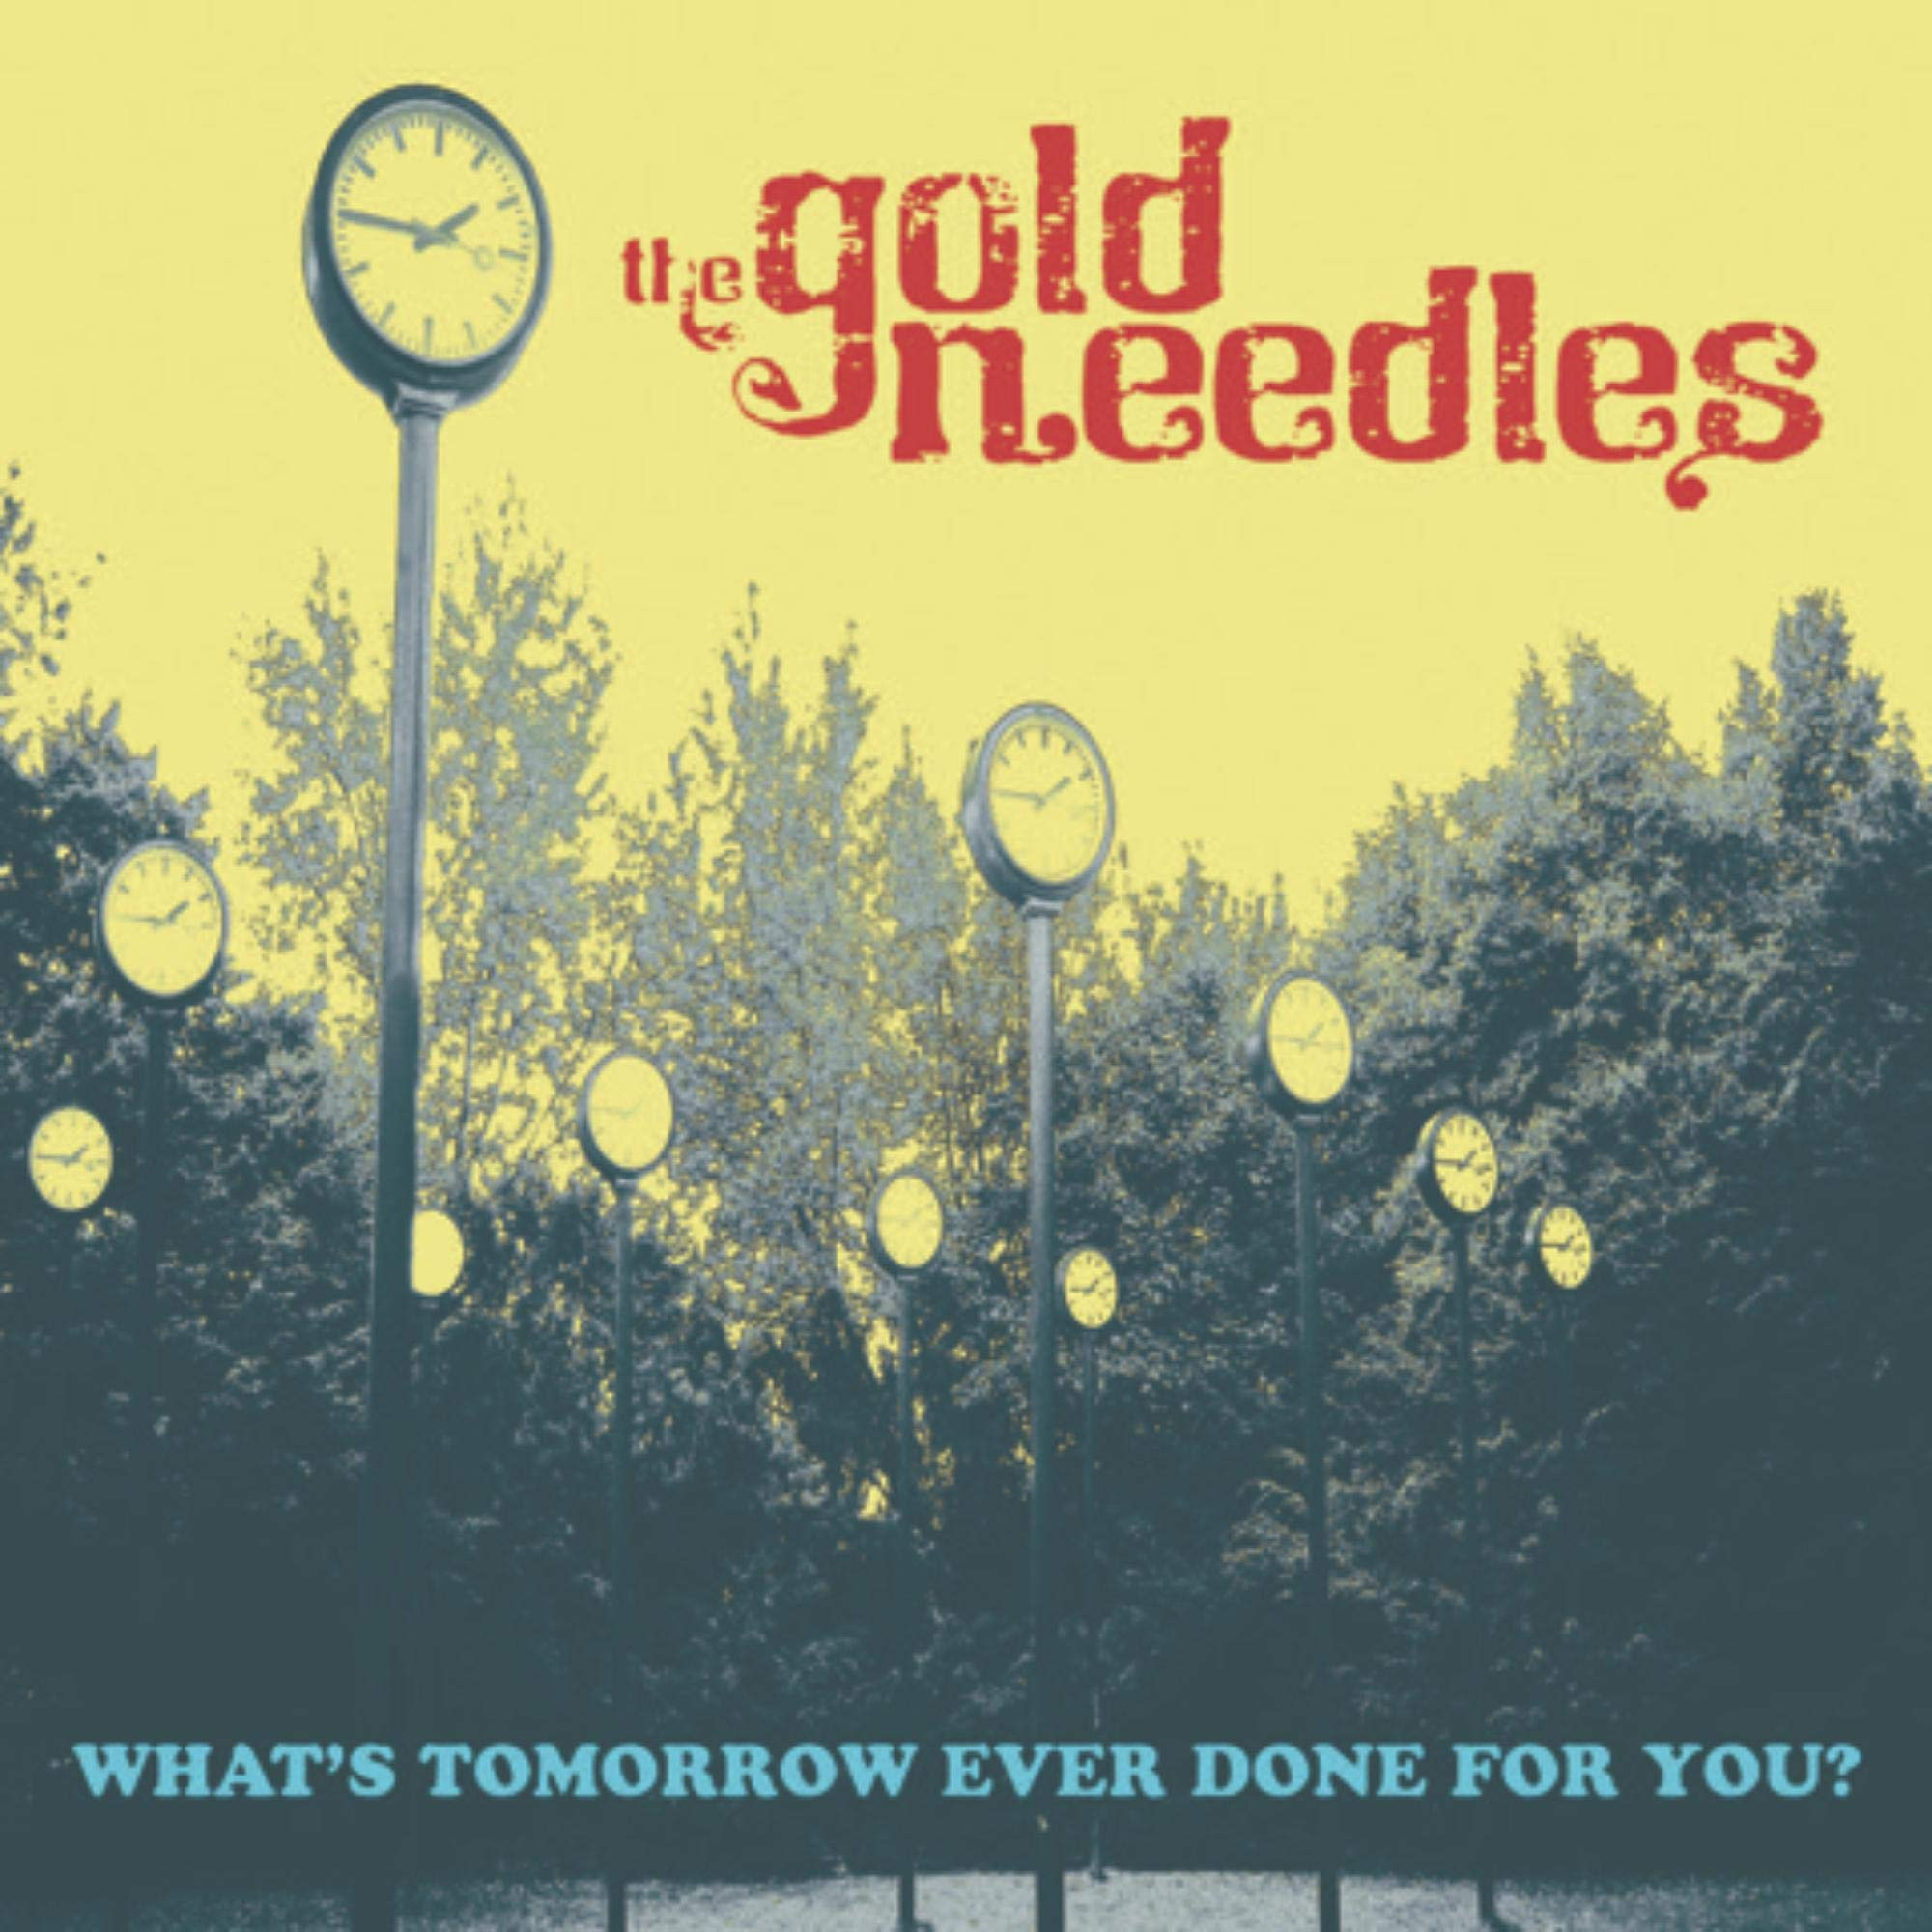 The Gold Needles - What's Tomorrow Ever Done For You? (2021) [FLAC] Download